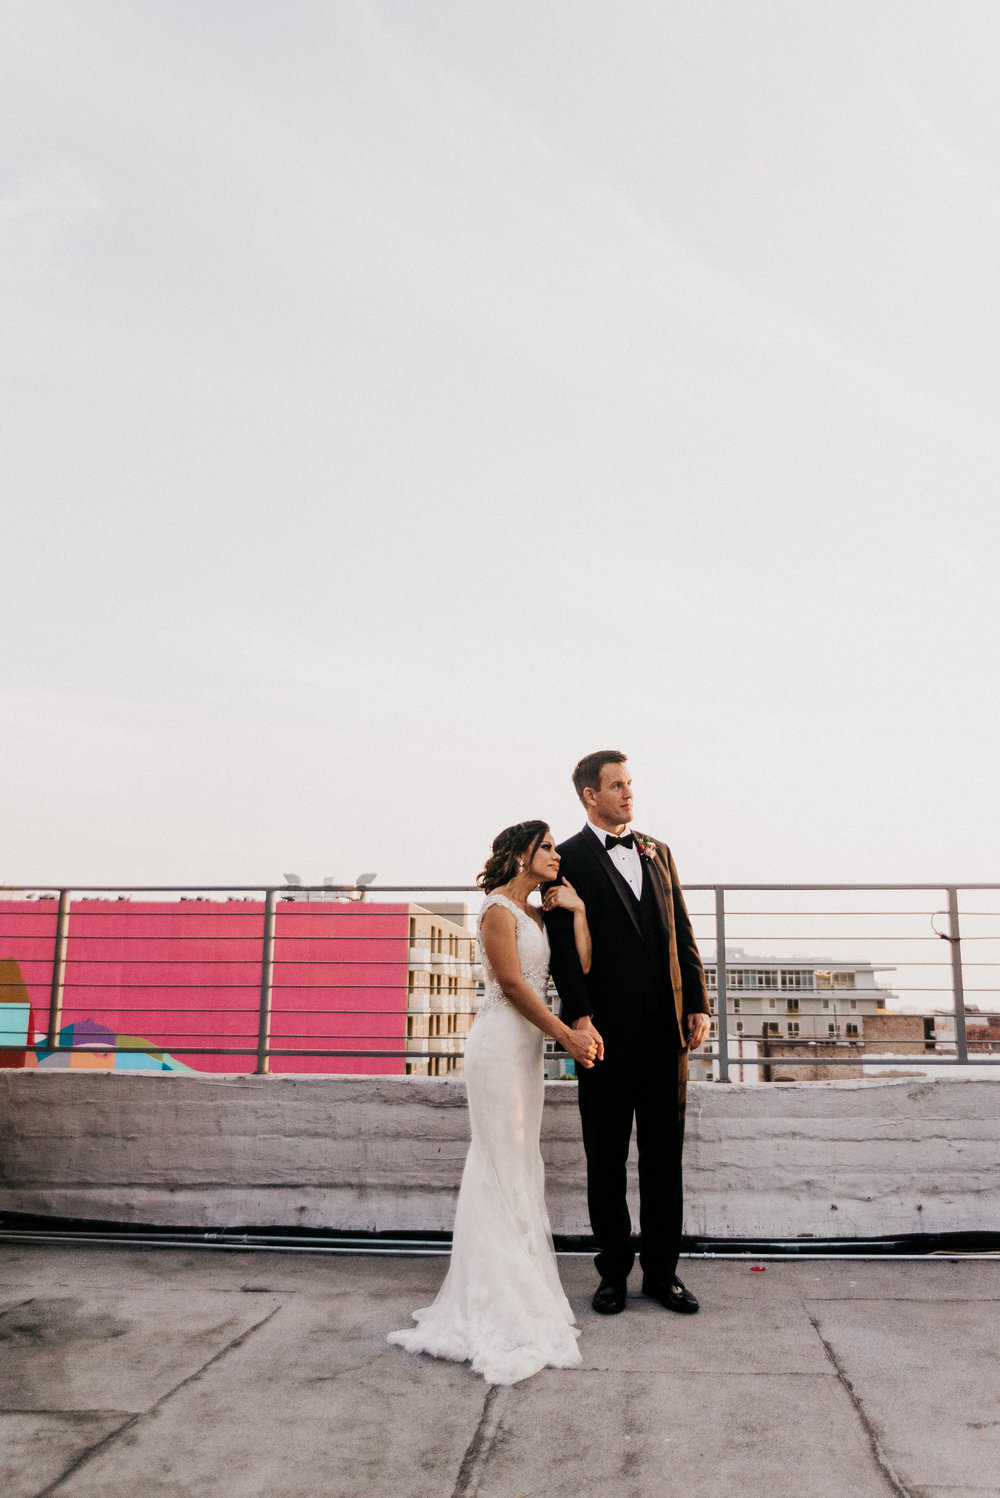 JACKIE JOSH WEDDING 2018-PREVIEW-0013.jpg